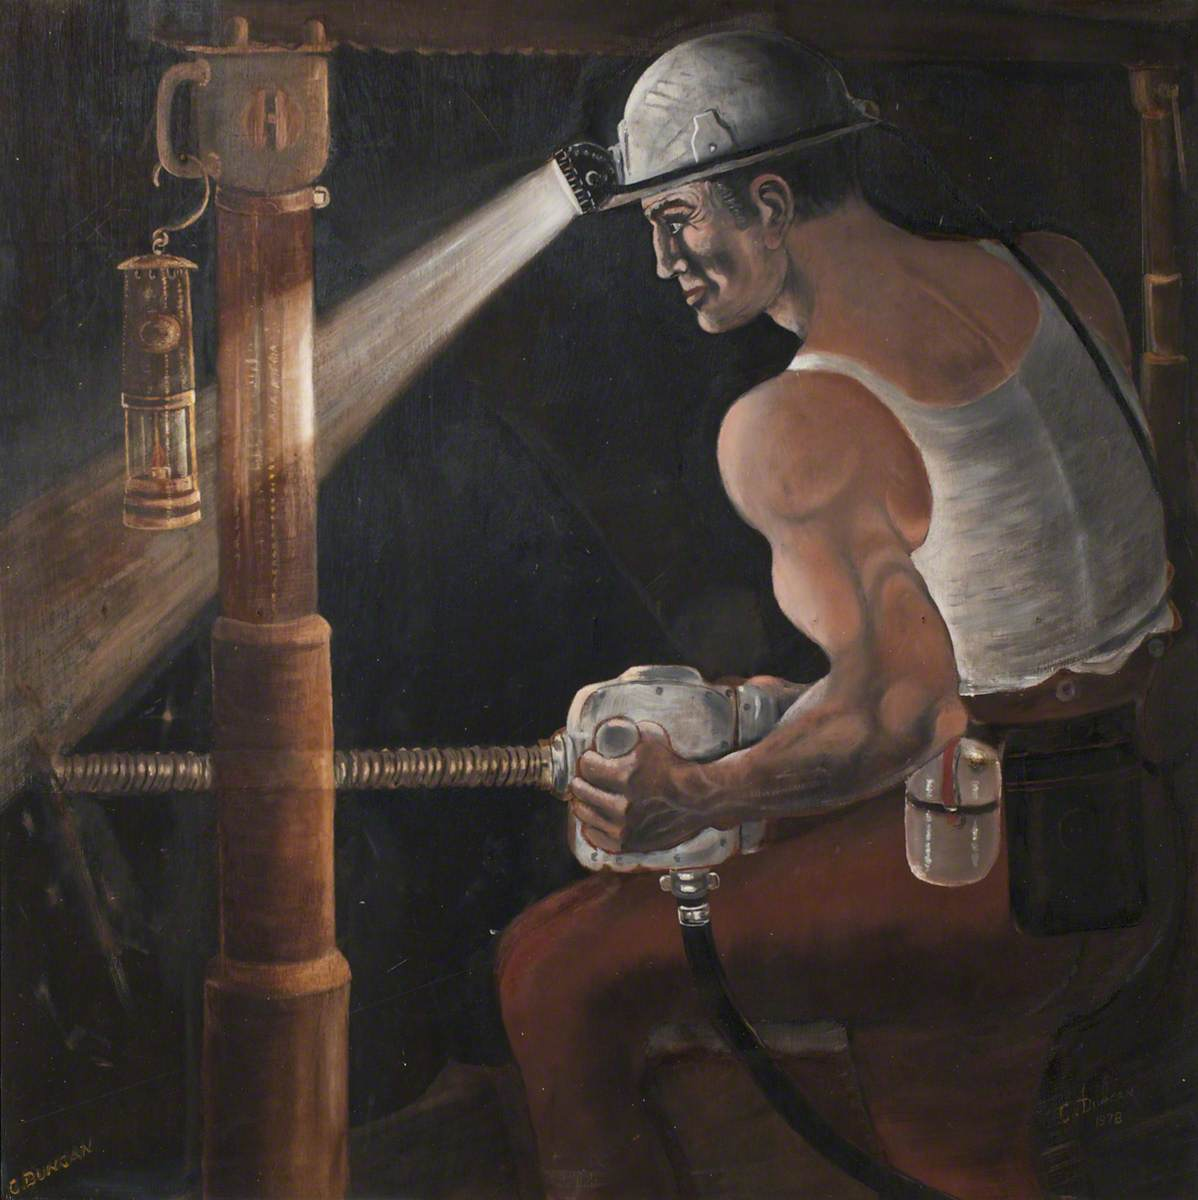 Miner Drilling at the Coalface